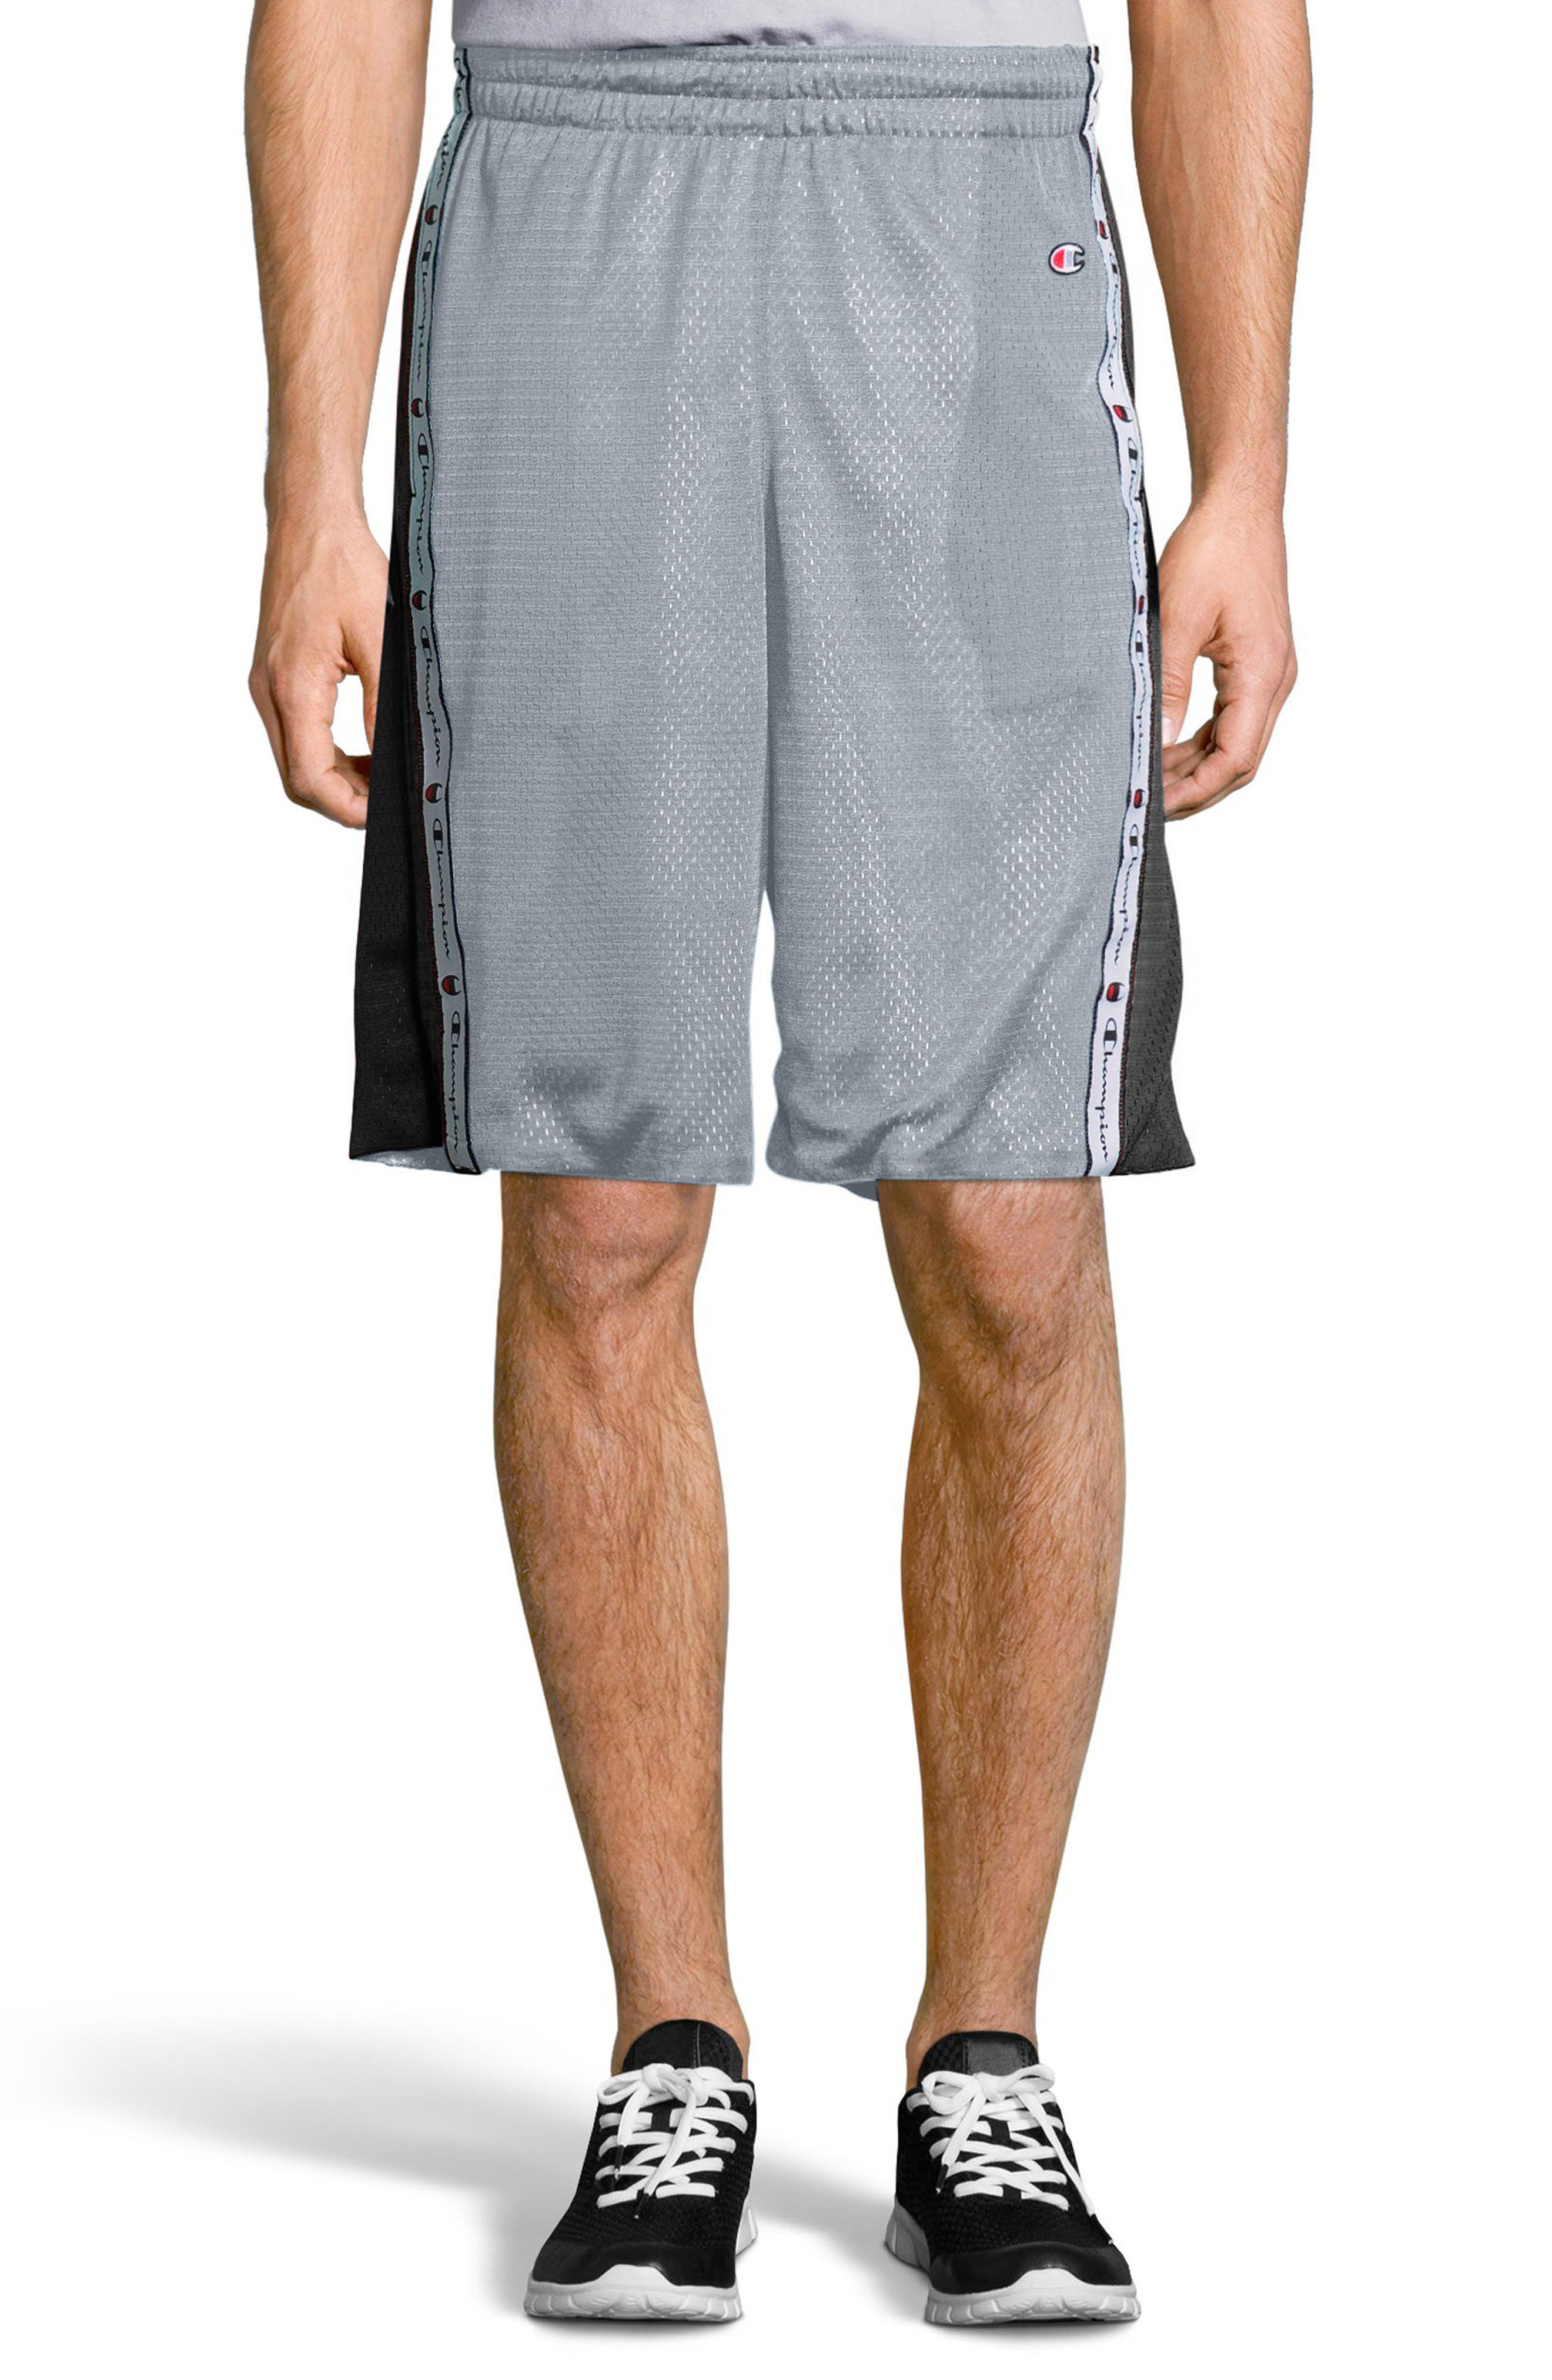 Reversible Mesh Shorts,                             Main thumbnail 1, color,                             Silverstone/ Black